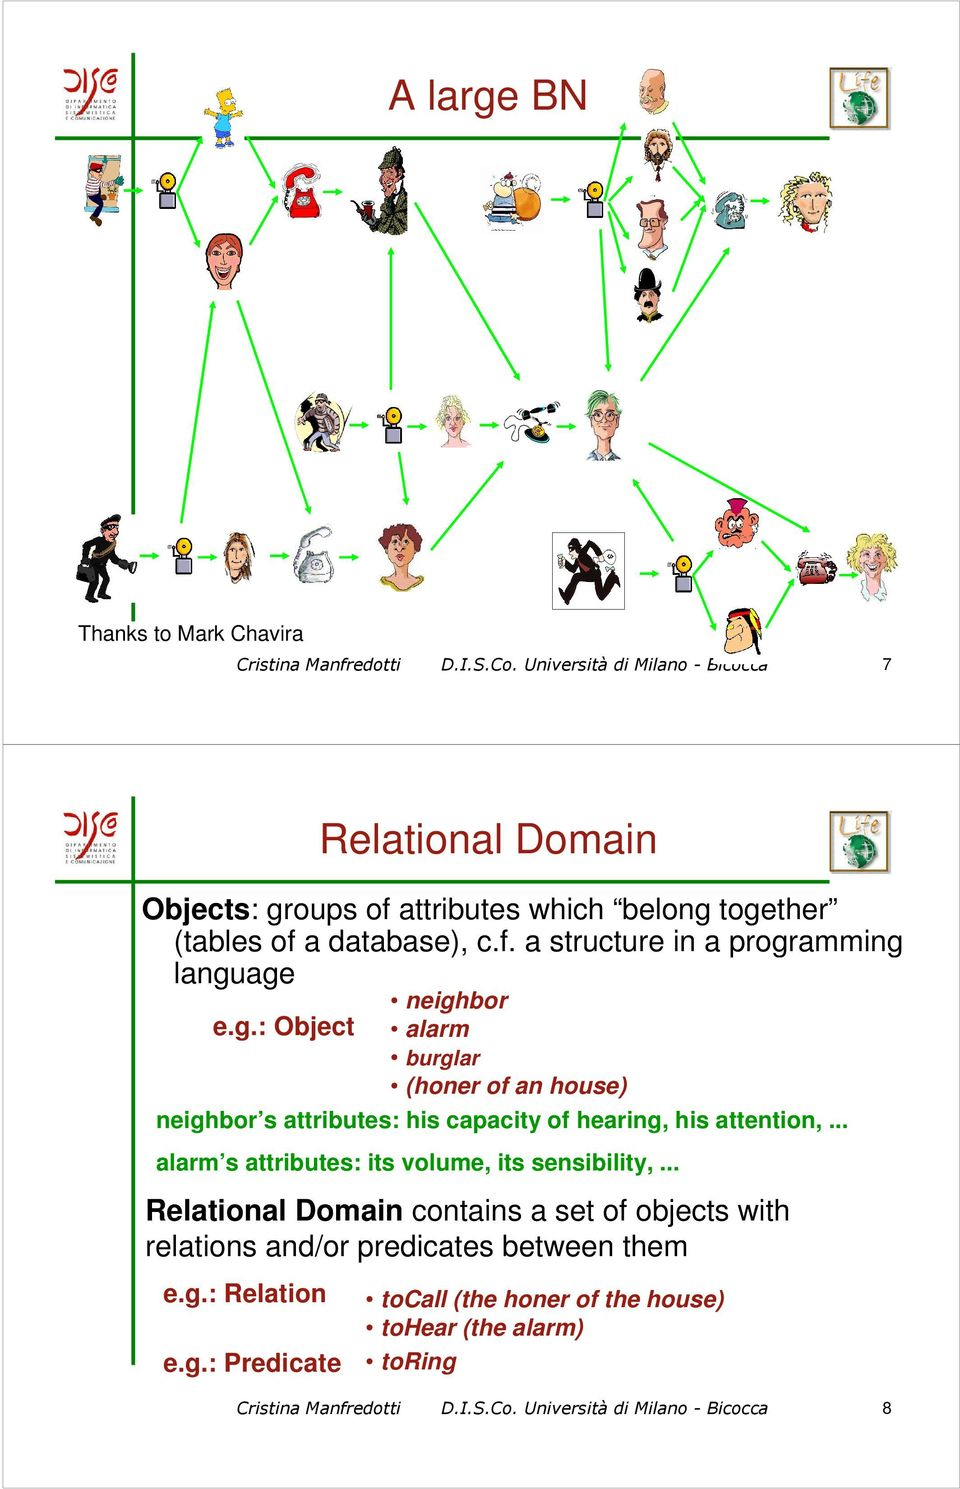 g.: Object Relational Domain contains a set of objects with relations and/or predicates between them e.g.: Relation neighbor alarm burglar (honer of an house) neighbor s attributes: his capacity of hearing, his attention,.